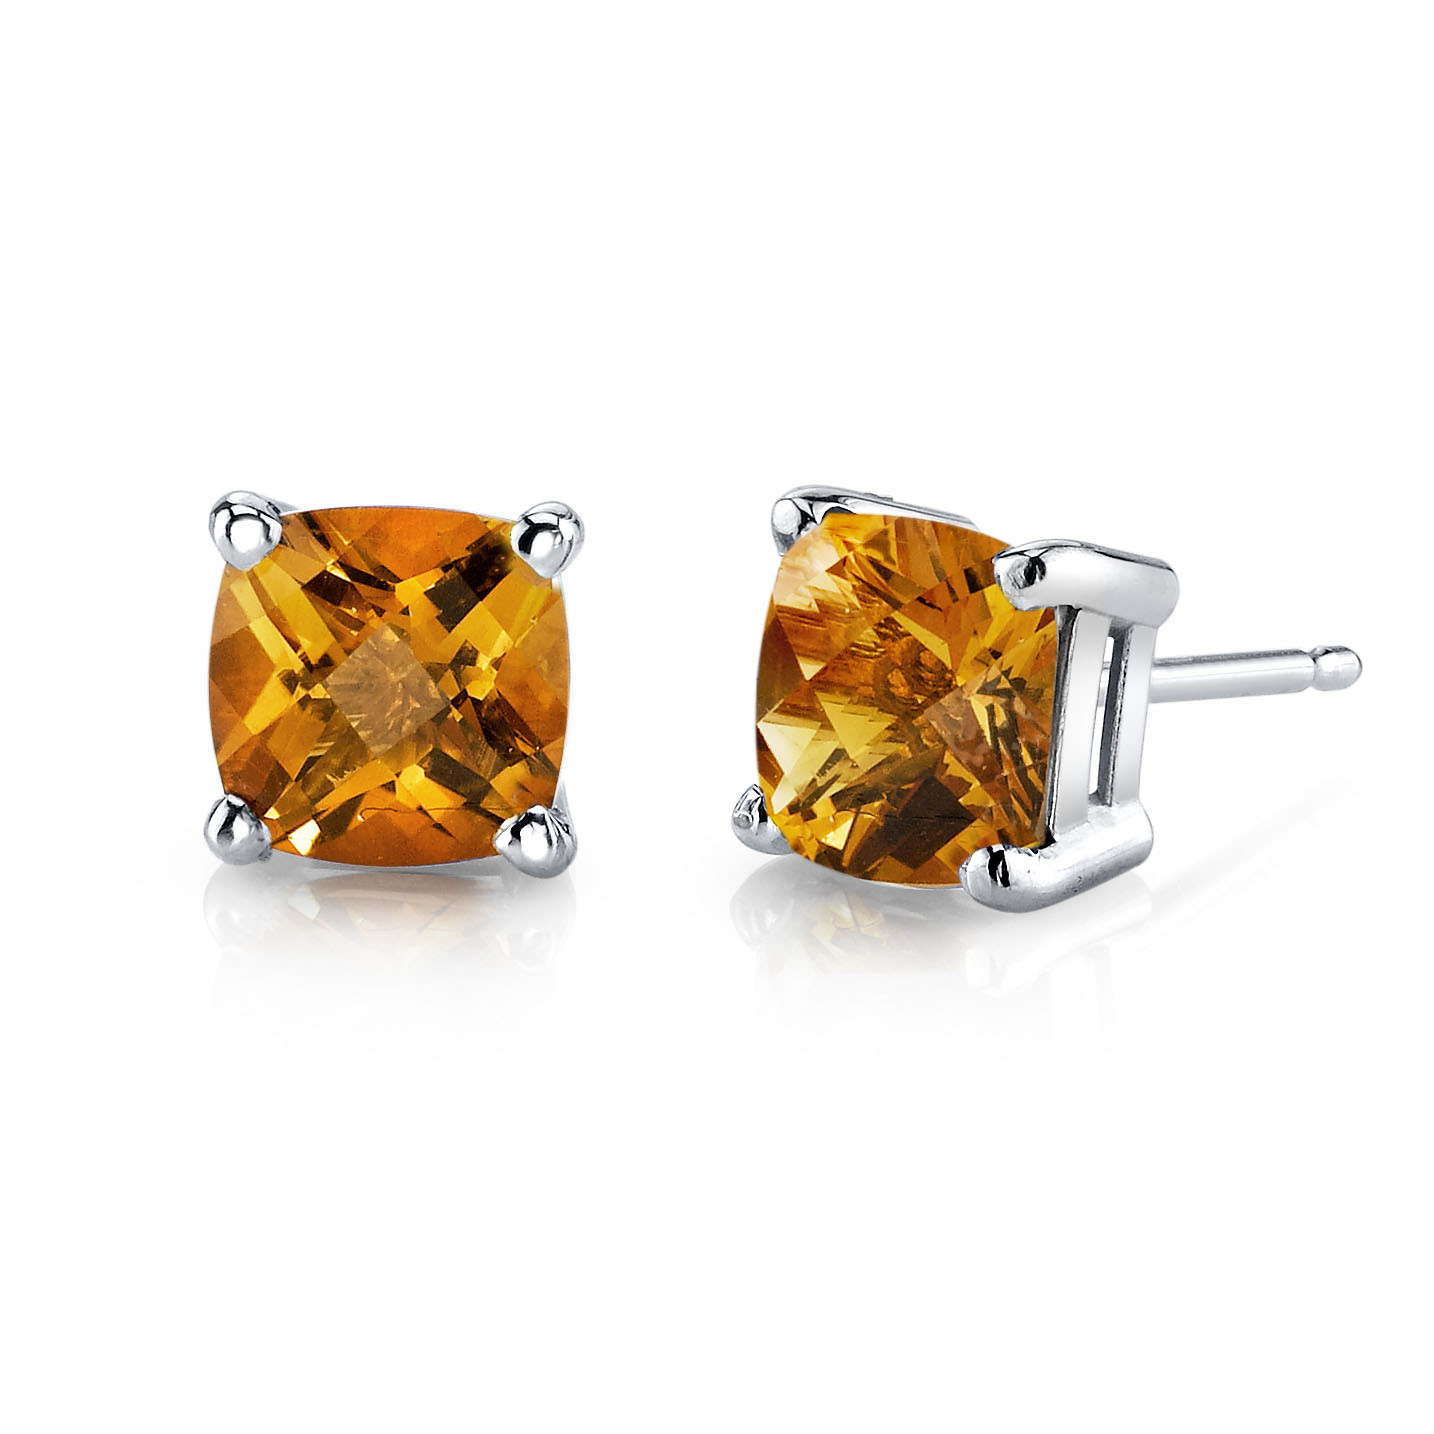 c6da90c3b5bf1 Cushion Cut Citrine Stud Earrings in 9ct White Gold